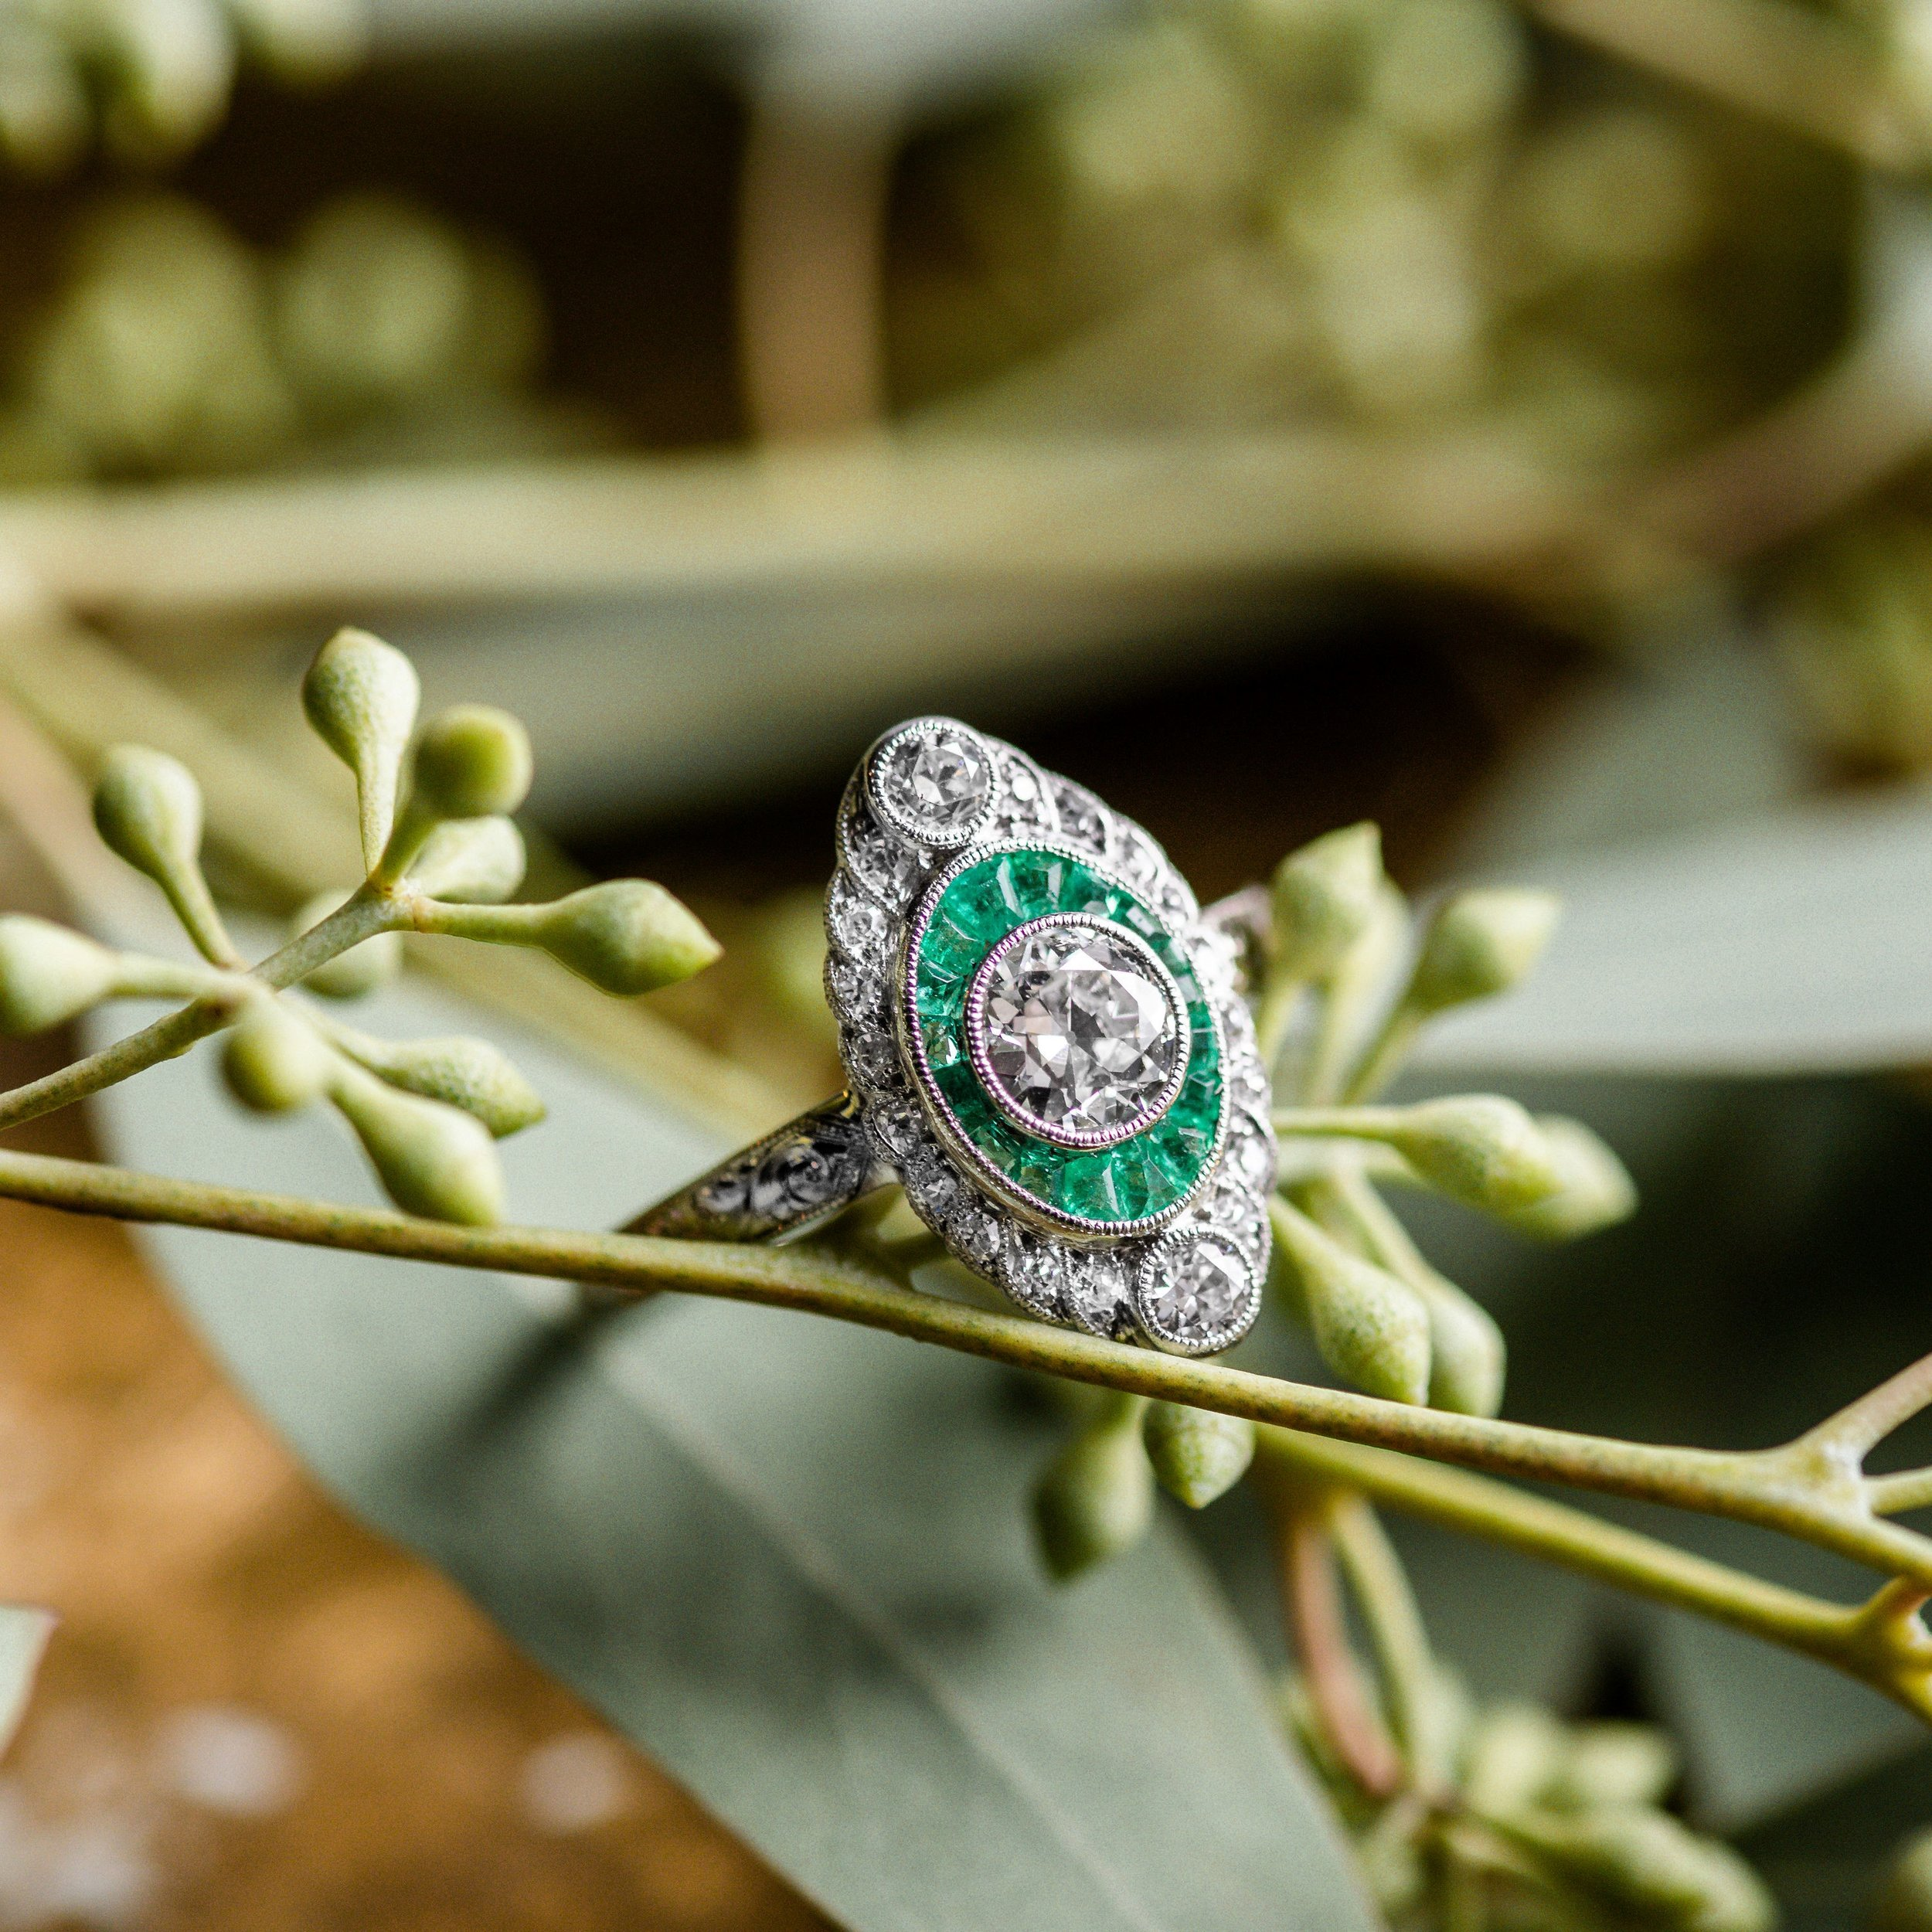 Mesmerizing Edwardian era emerald and diamond ring featuring a center 0.50 carat Old European cut diamond. Click  HERE  to shop this beauty!